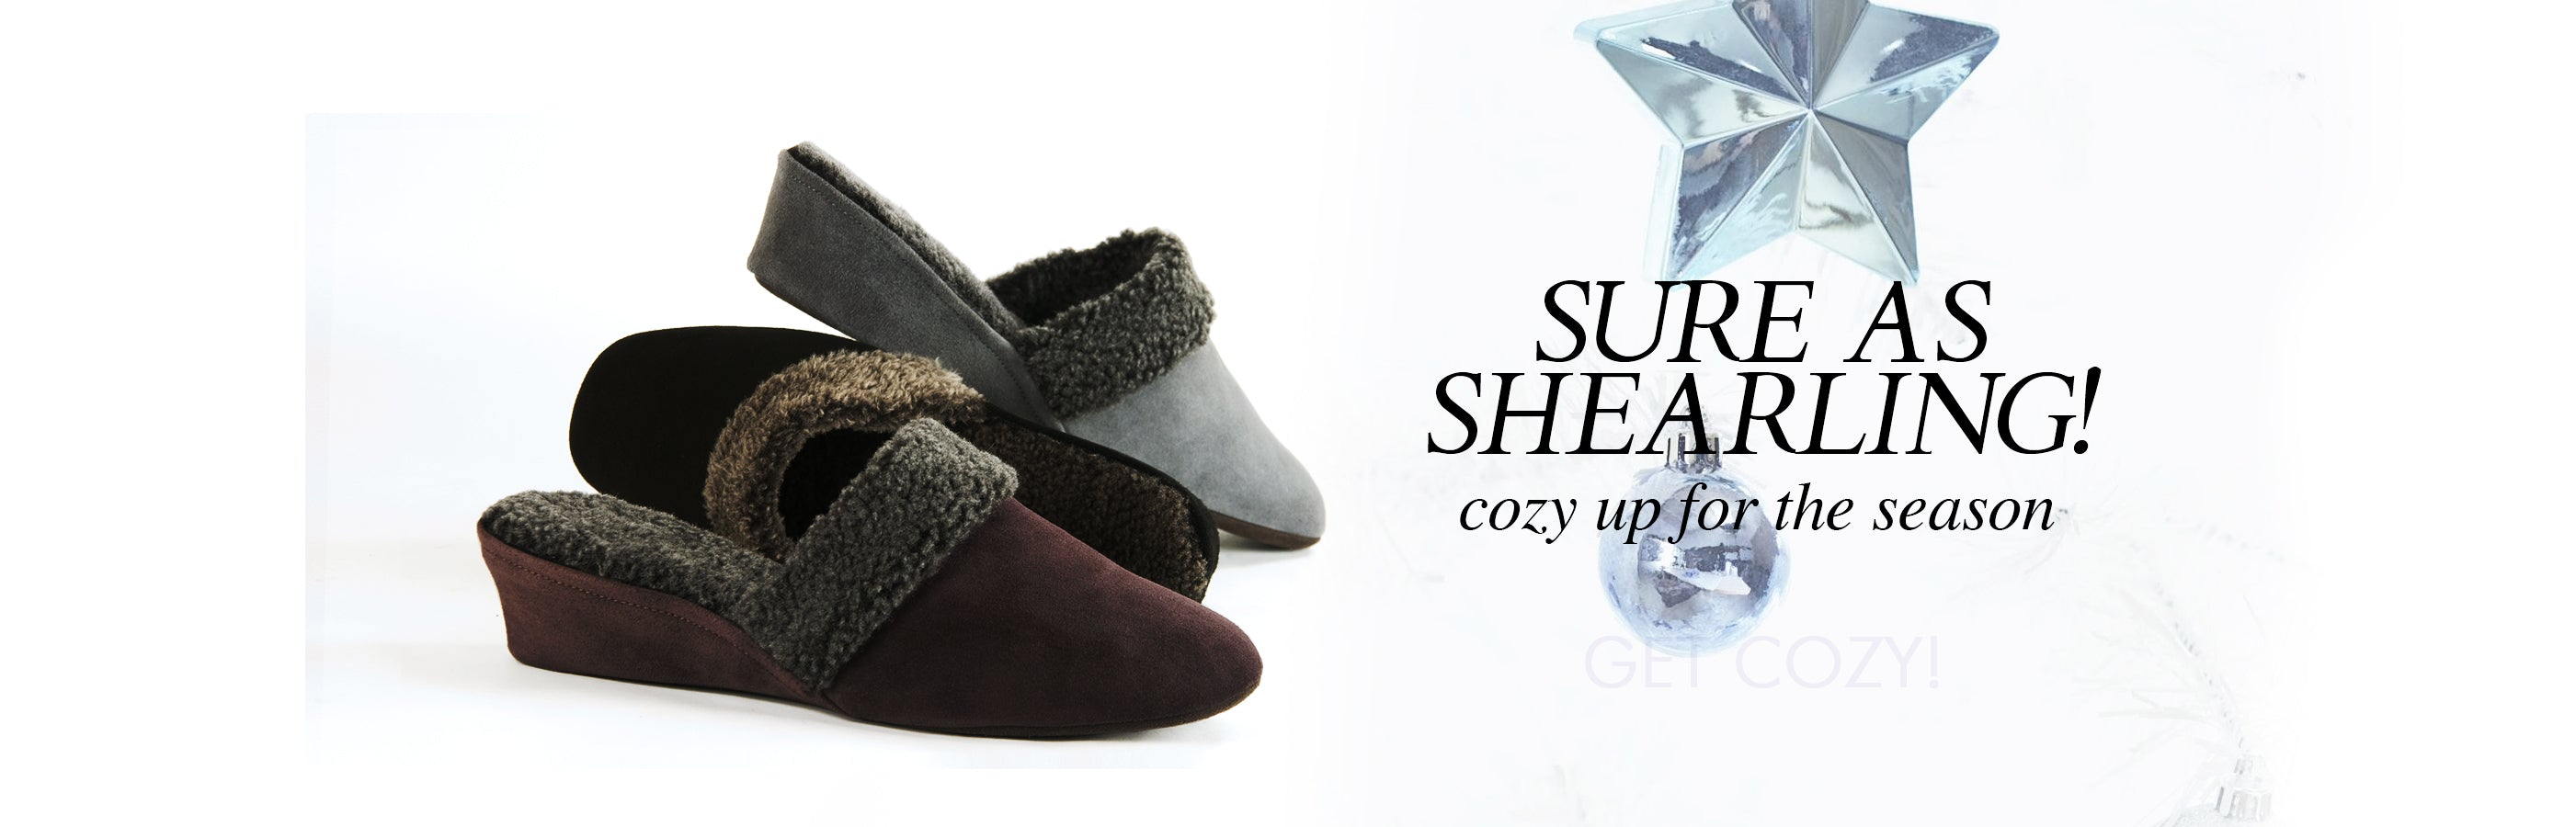 Jacques Levine #9854 Shearling Slippers